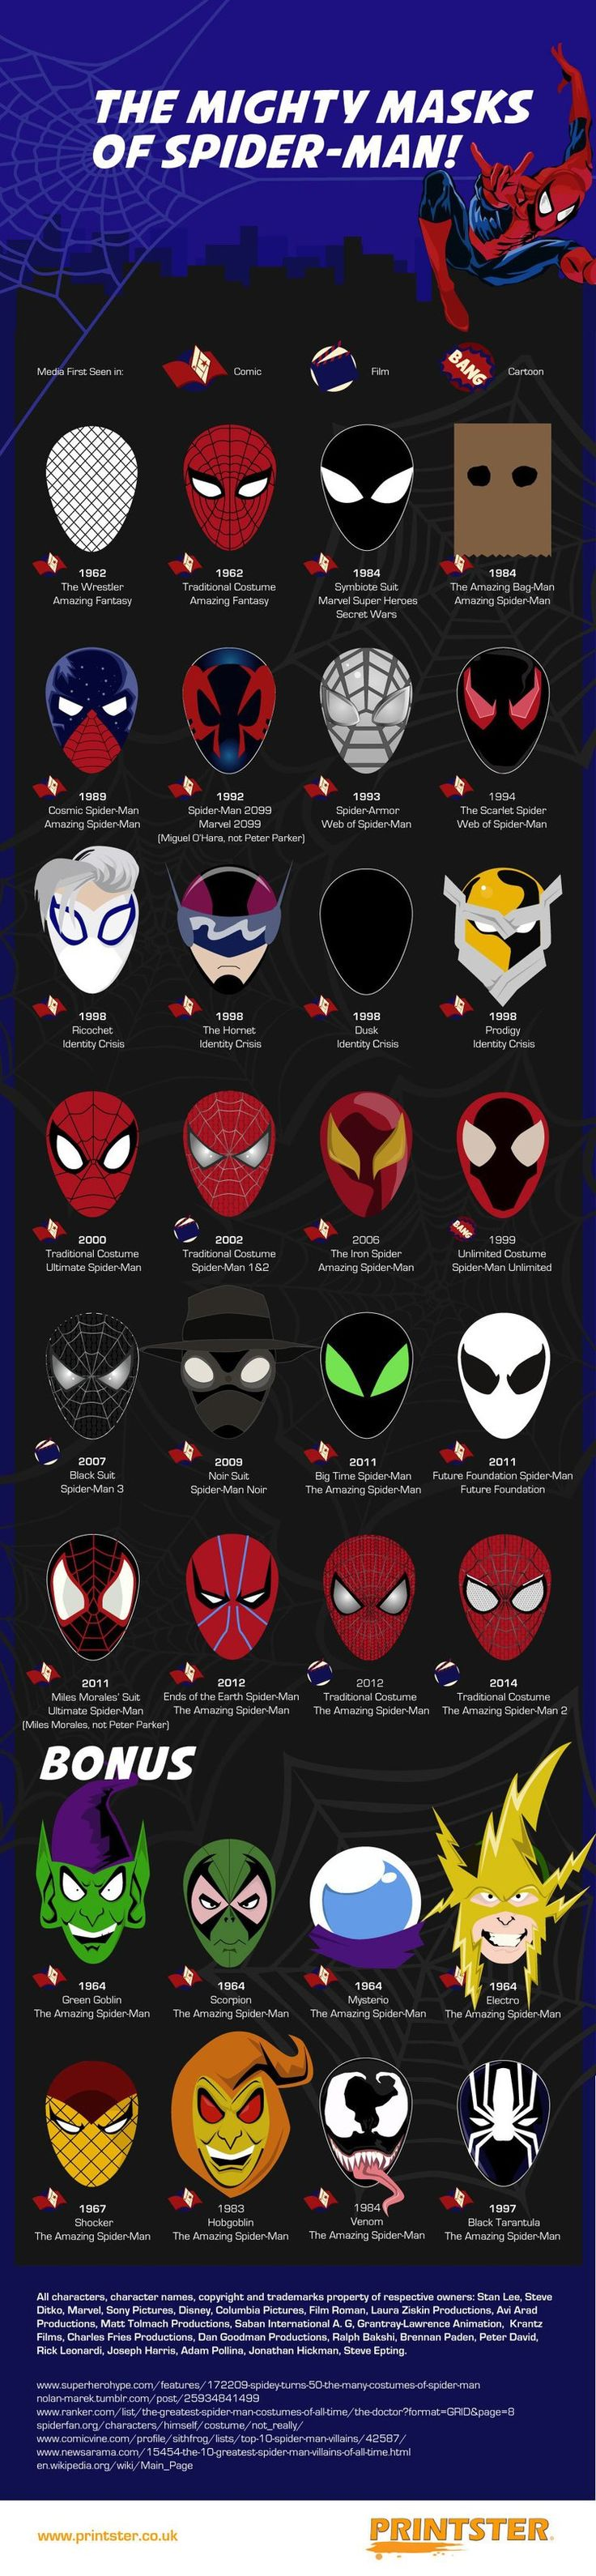 Infographic Examines Spider-Man's Coolest Masks — GeekTyrant